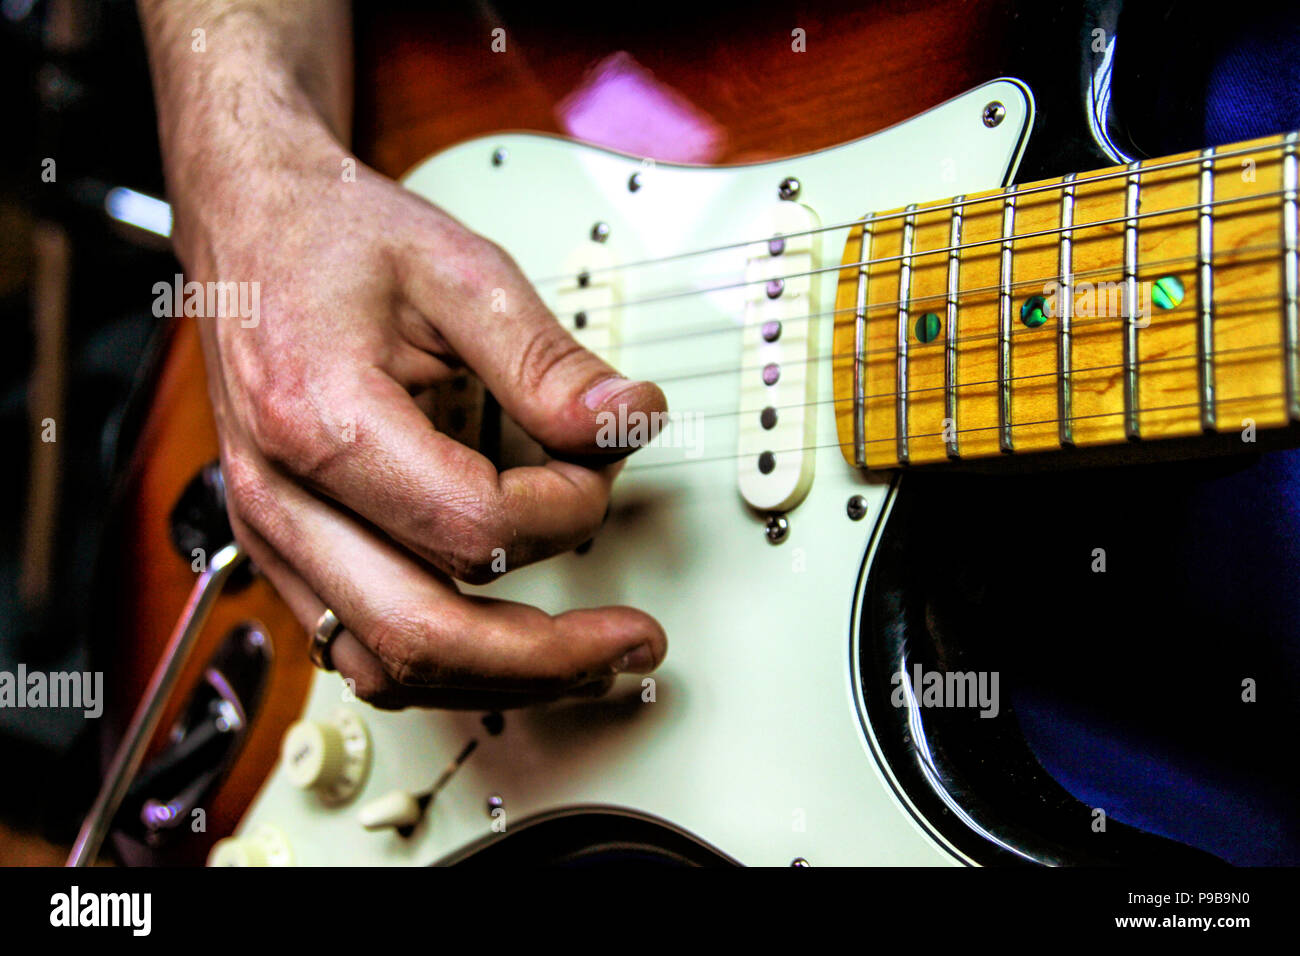 Young man playing electric guitar. Focus on the hand - Stock Image